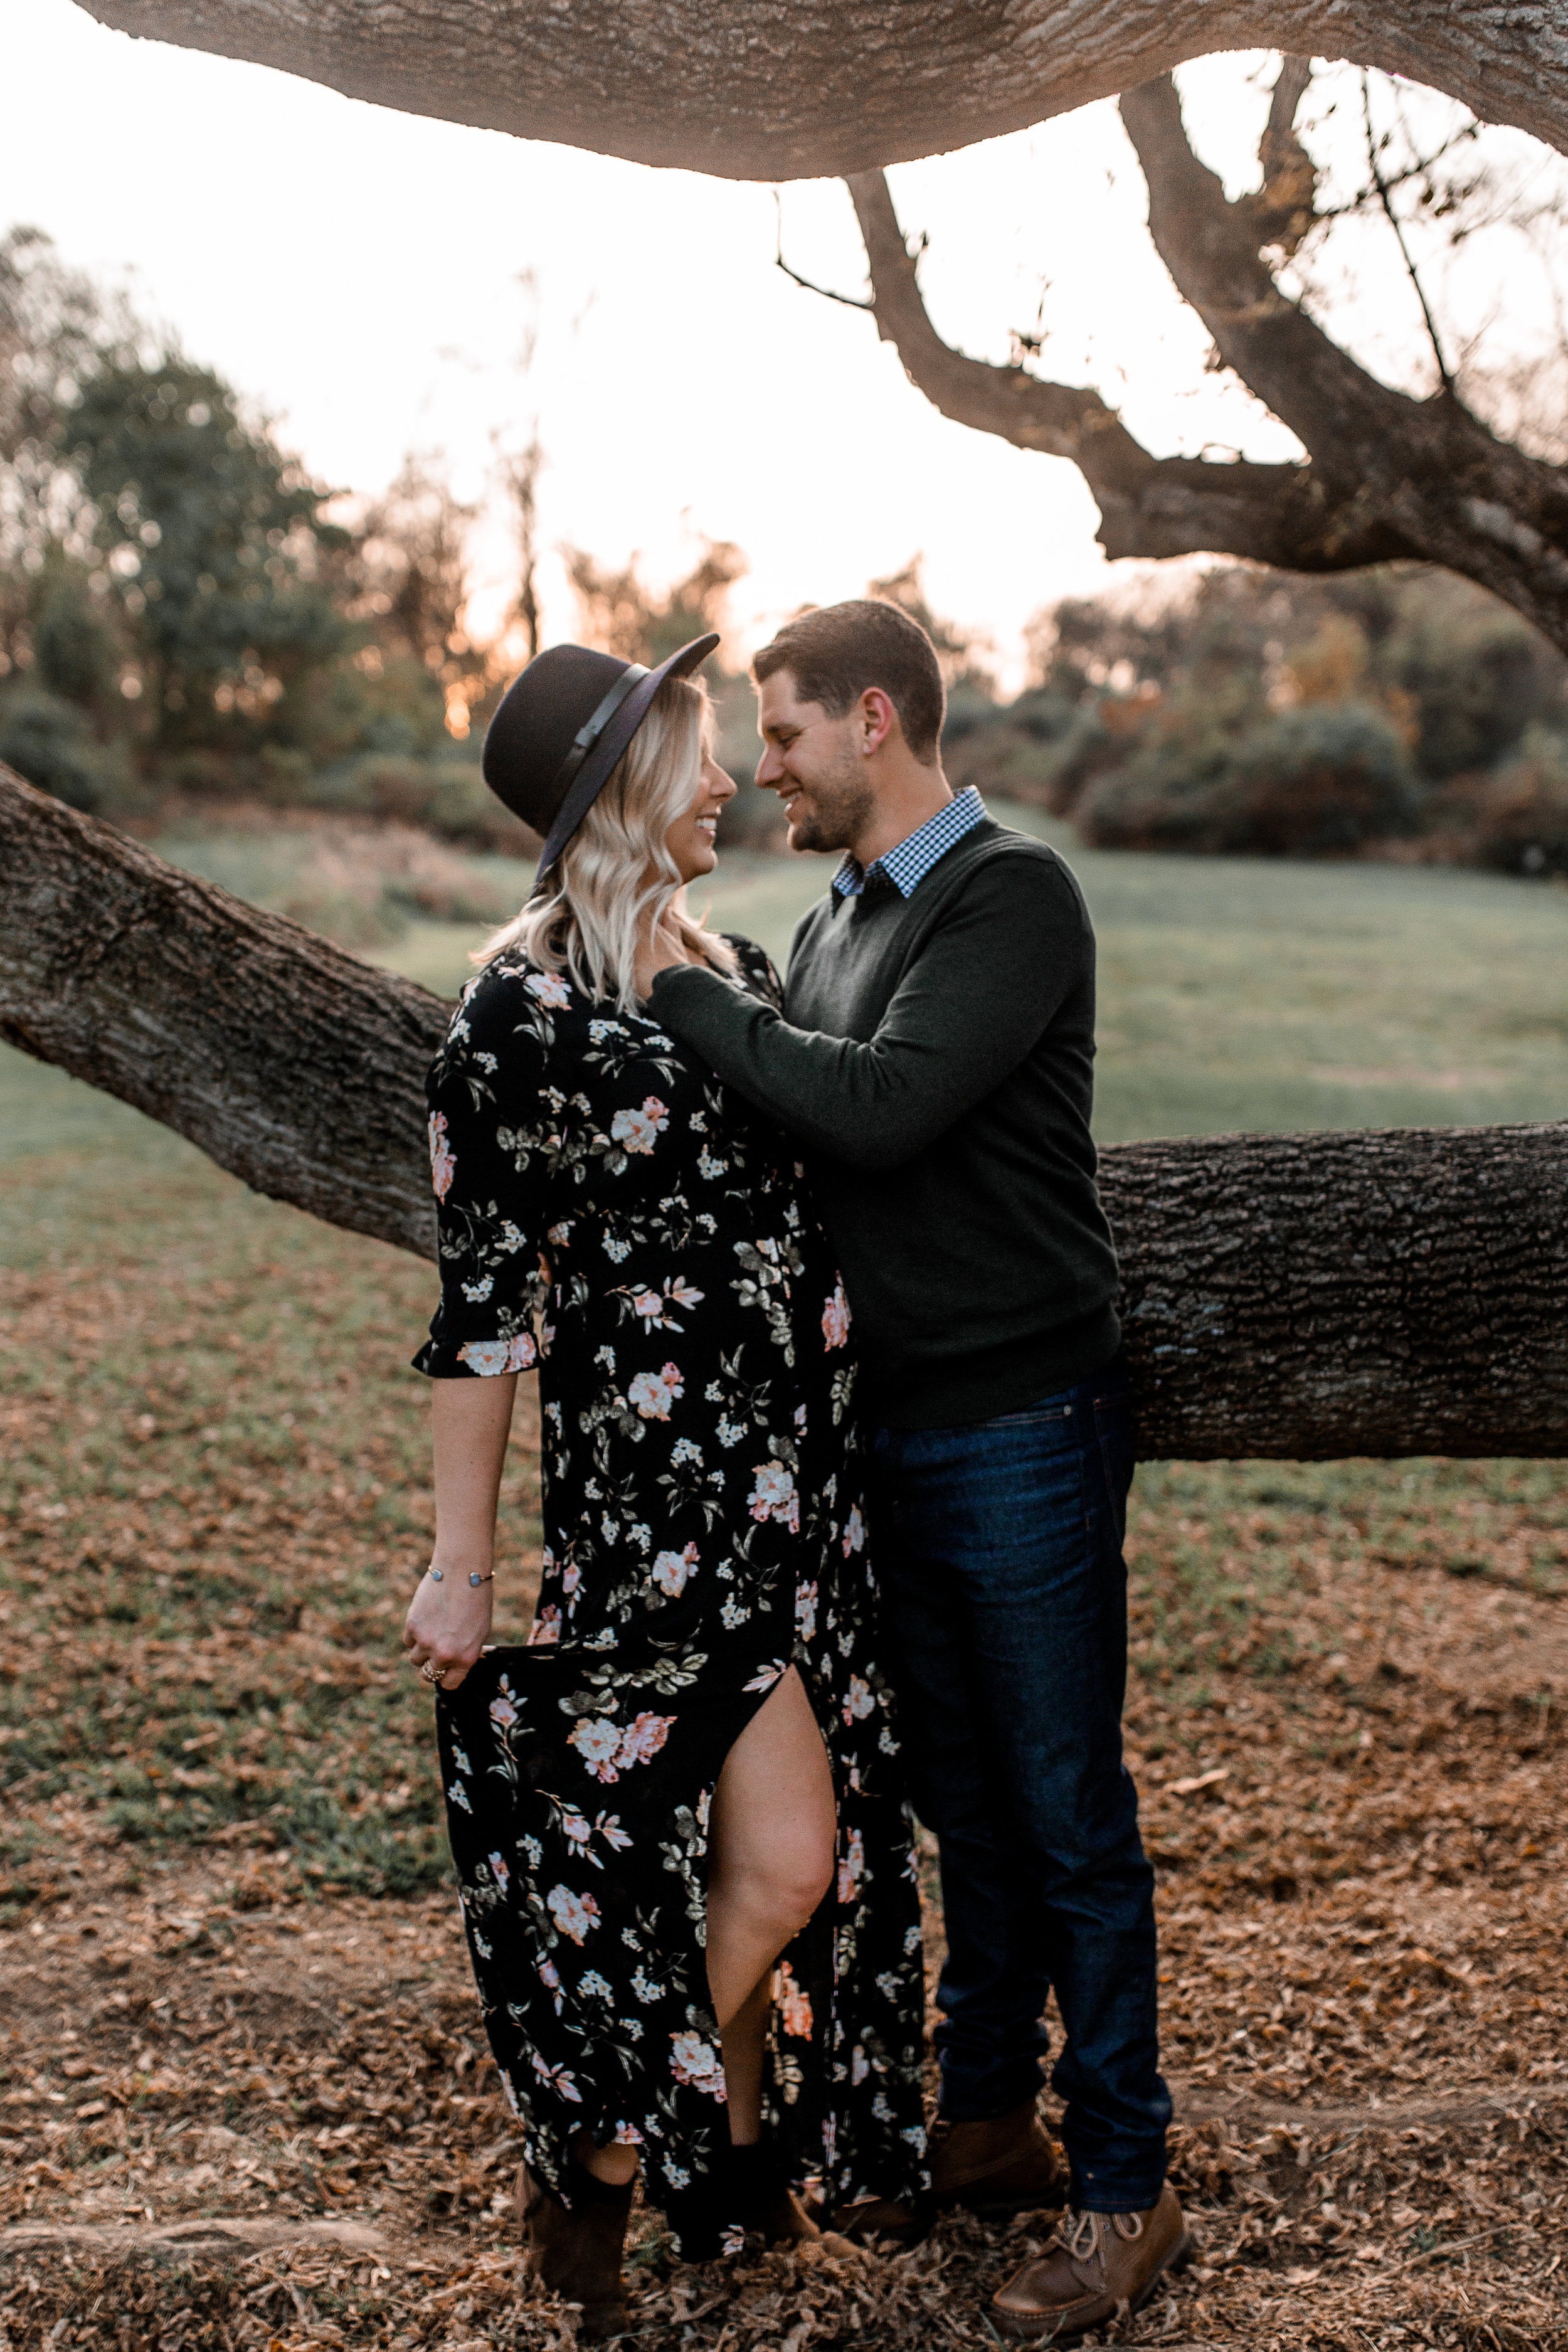 nicole-daacke-photography-carefree-bohemian-lancaster-pa-pennsylvania-engagement-photos-engagement-session-golden-sunset-adventure-session-in-lancaster-pa-lancaster-pa-outdoor-wedding-photographer-24.jpg